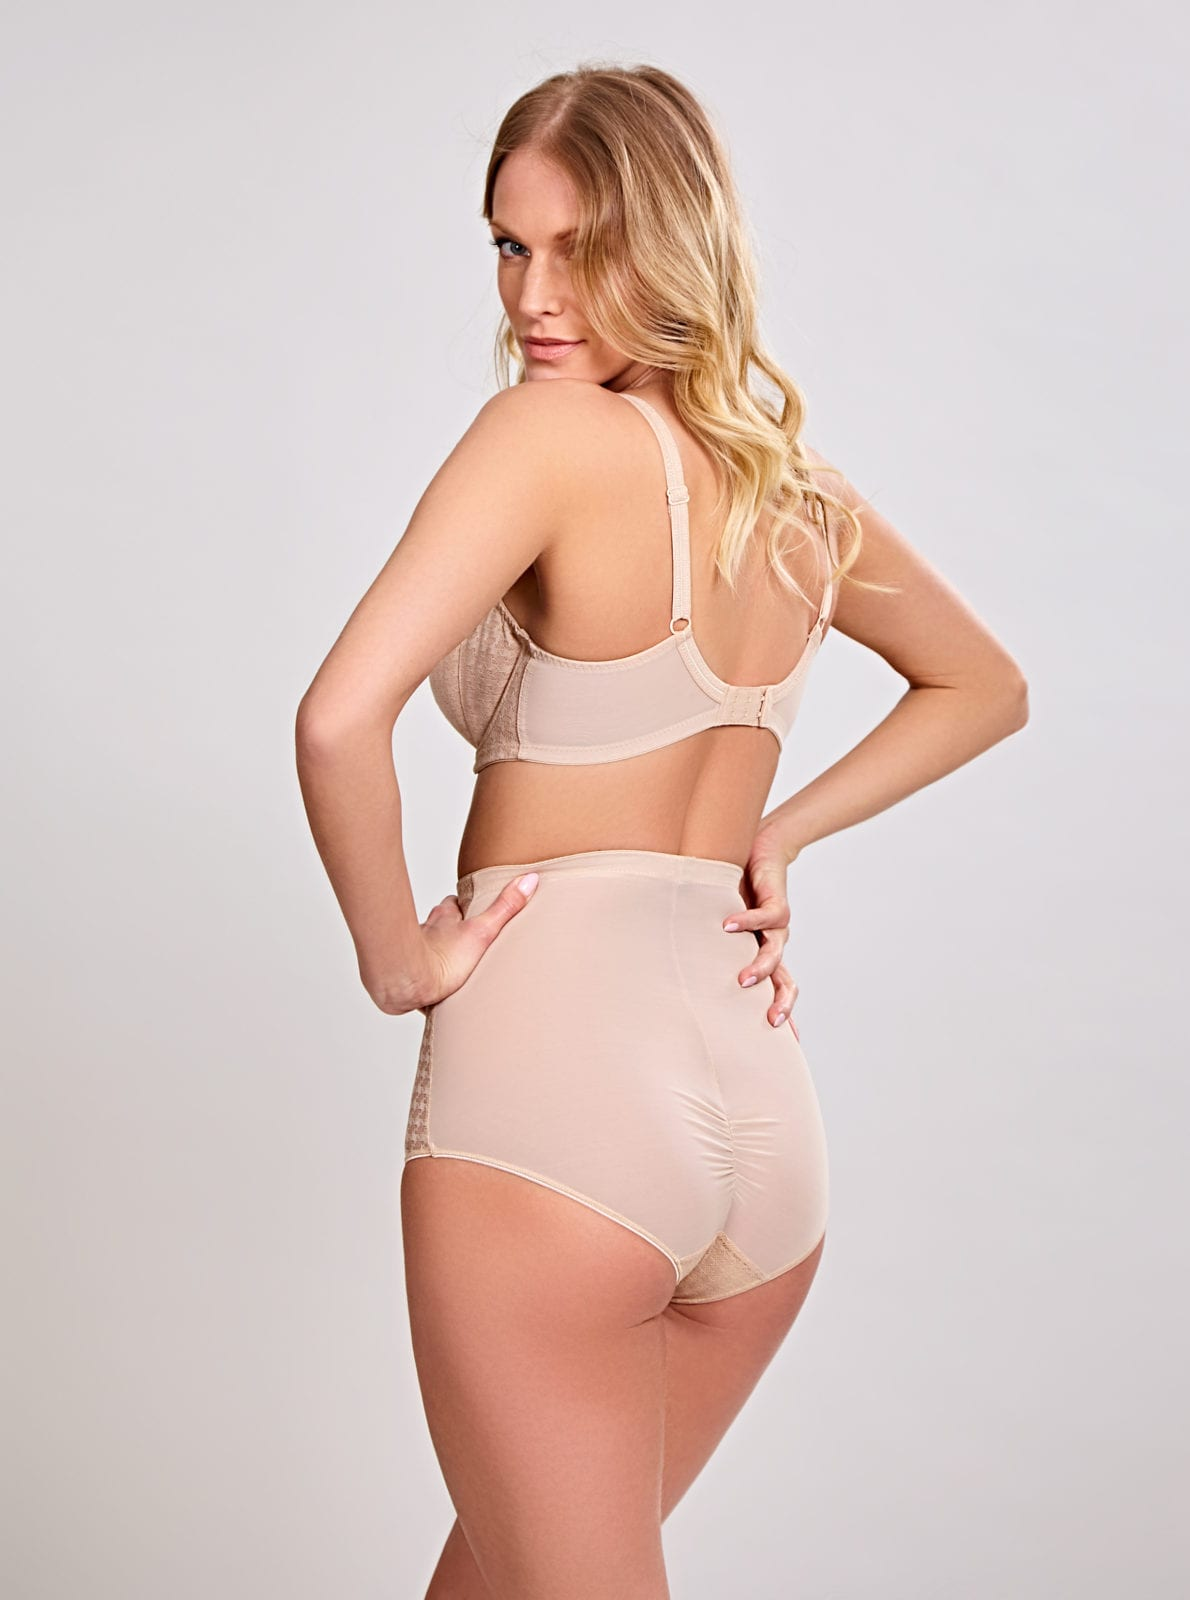 Базовое белье 7285_208_Envy Balconnet Bra Nude Back Trade 6